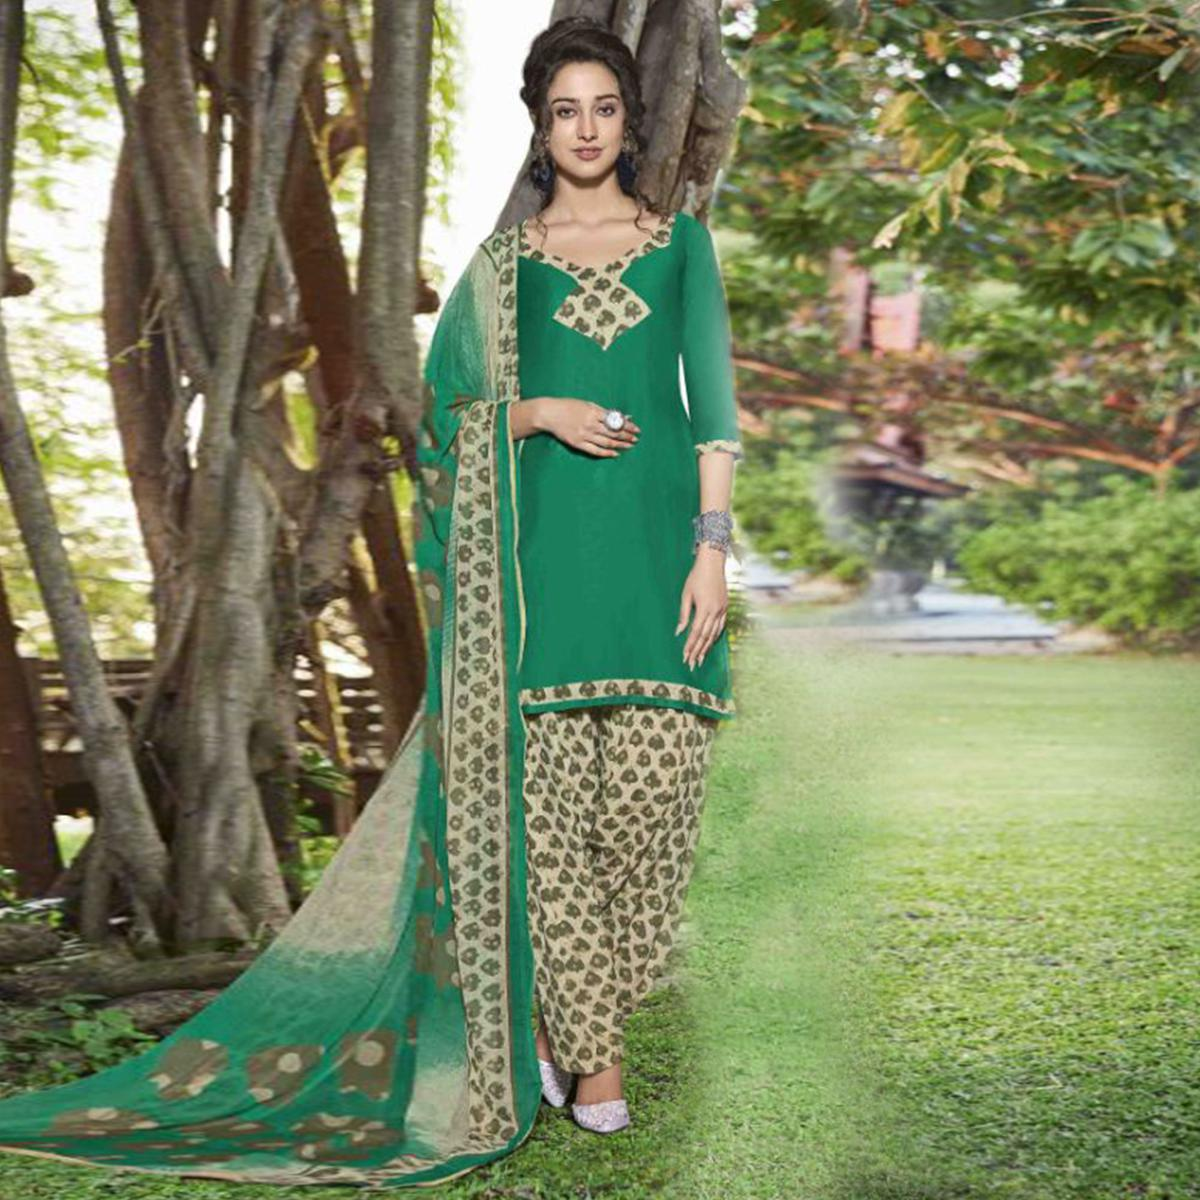 Classy Green Colored Casual Wear Printed Heavy Cotton Patiyala Dress Material